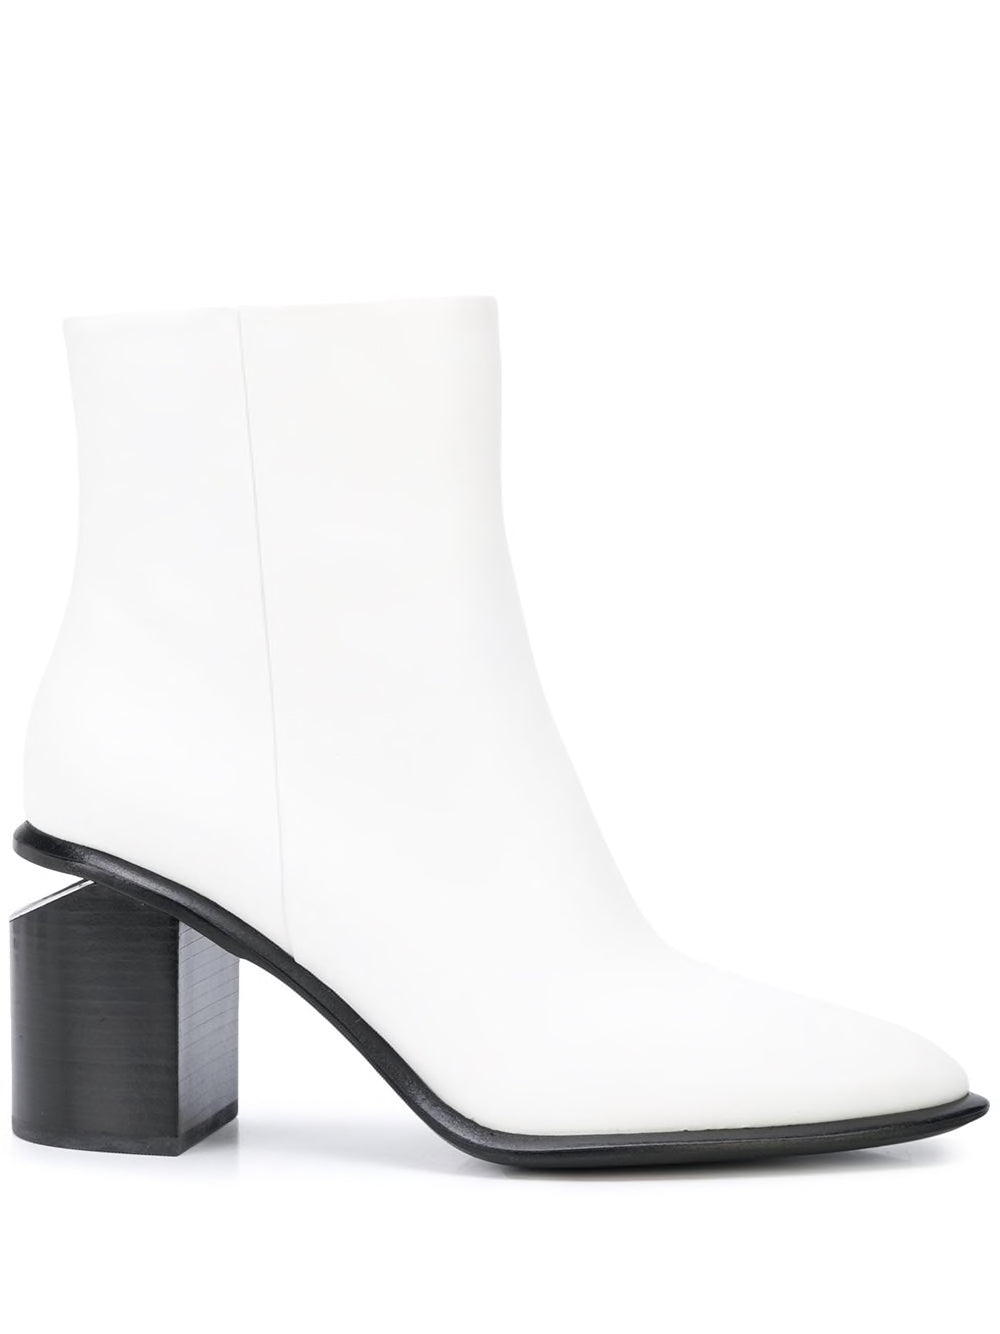 ALEXANDER WANG WOMEN ANNA BOOTIES